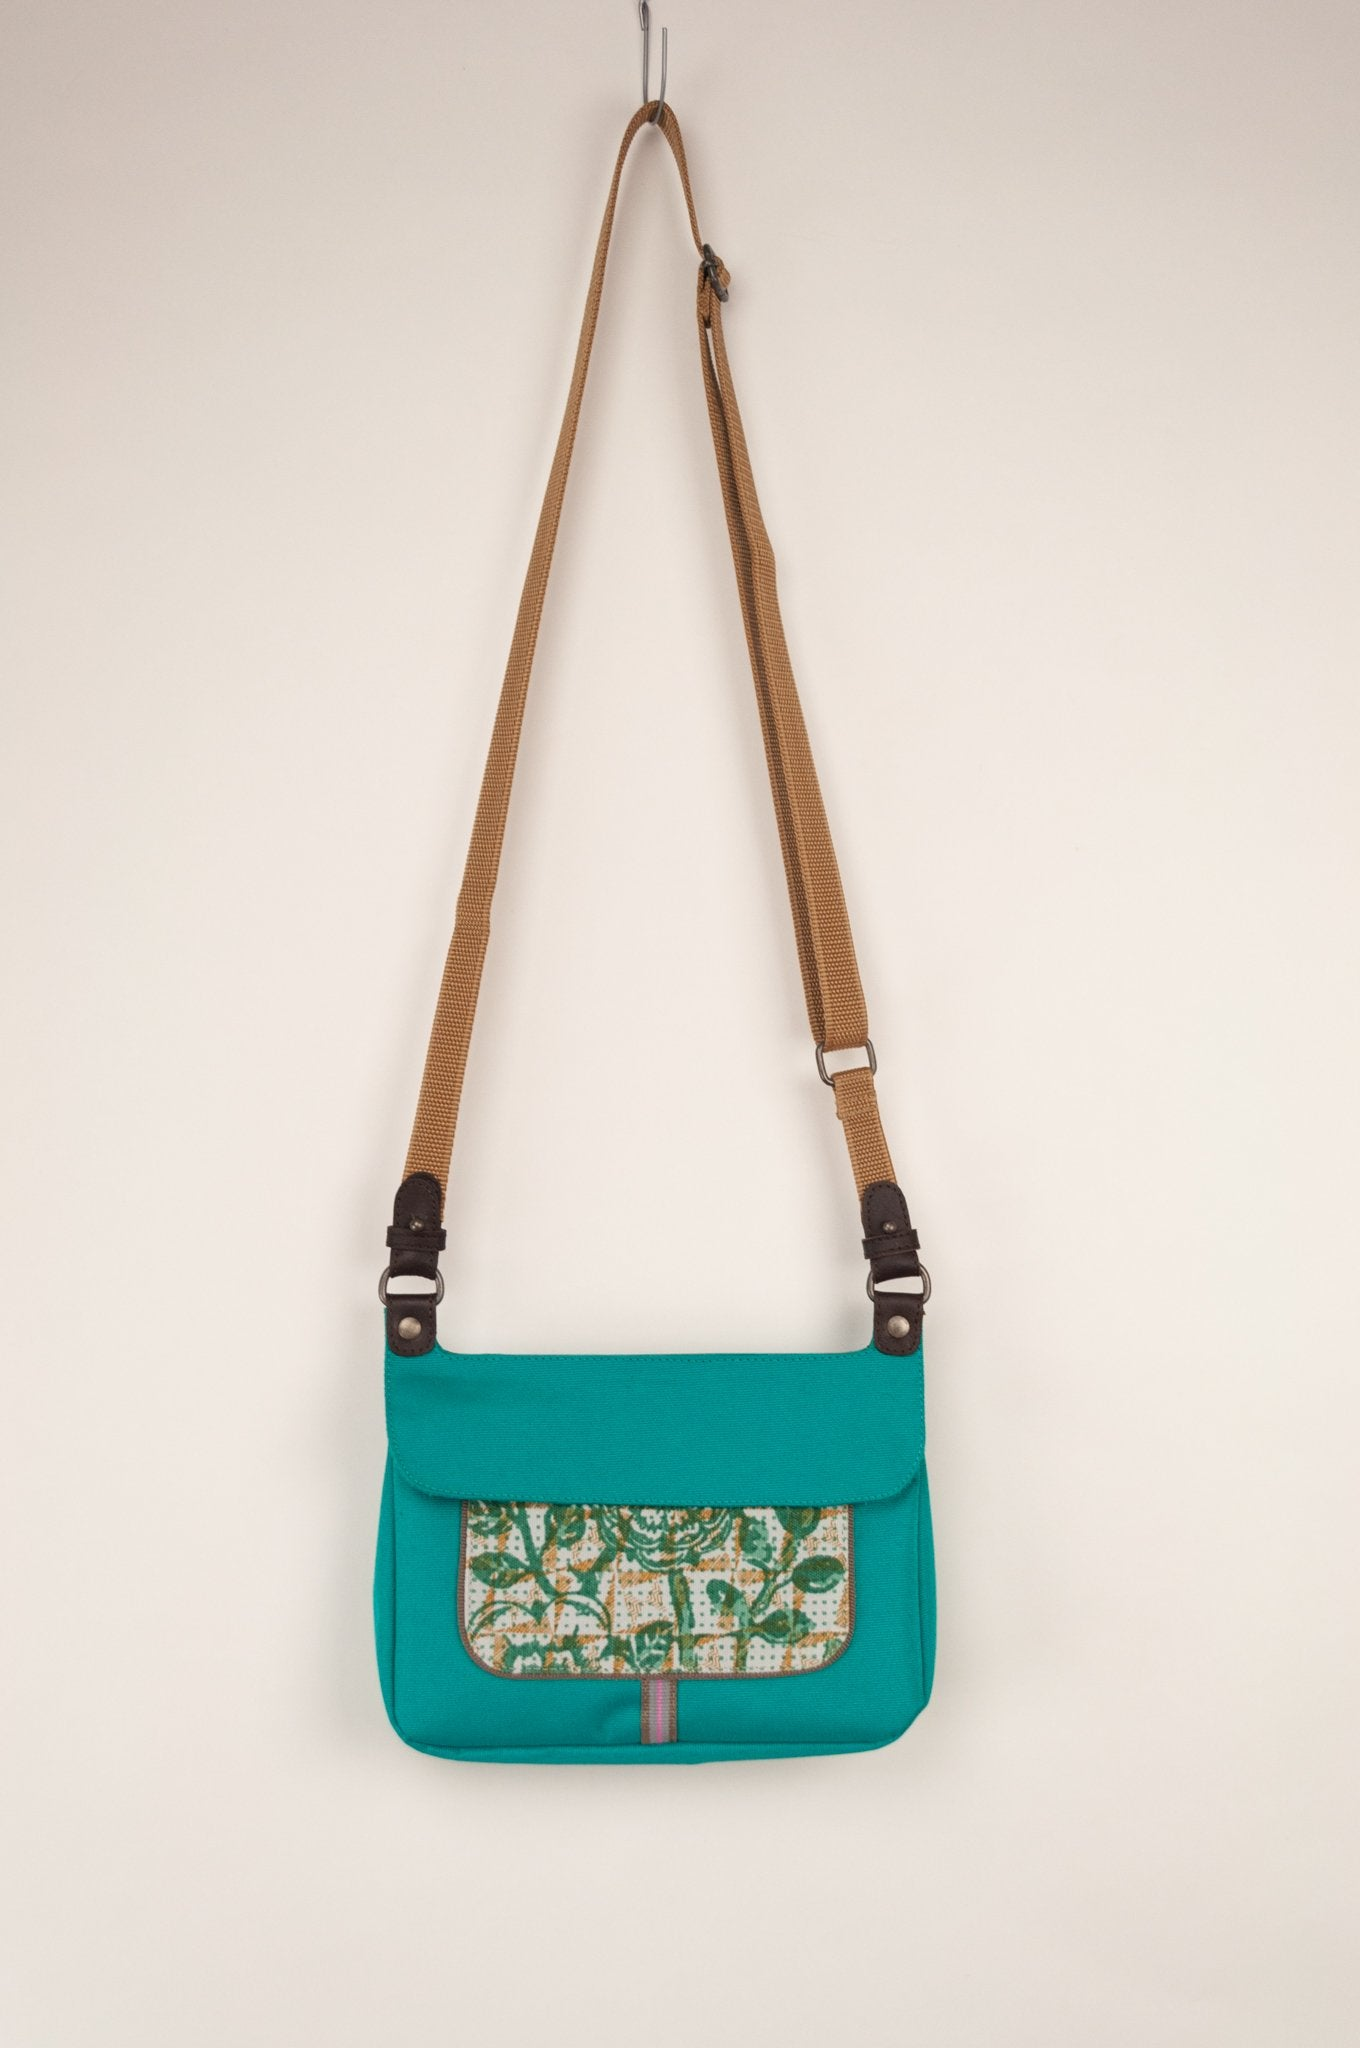 Anna Kaszer Nigi mini crossbody bag in nolana (floral pattern panel on turquoise), with adjustable shoulder strap.